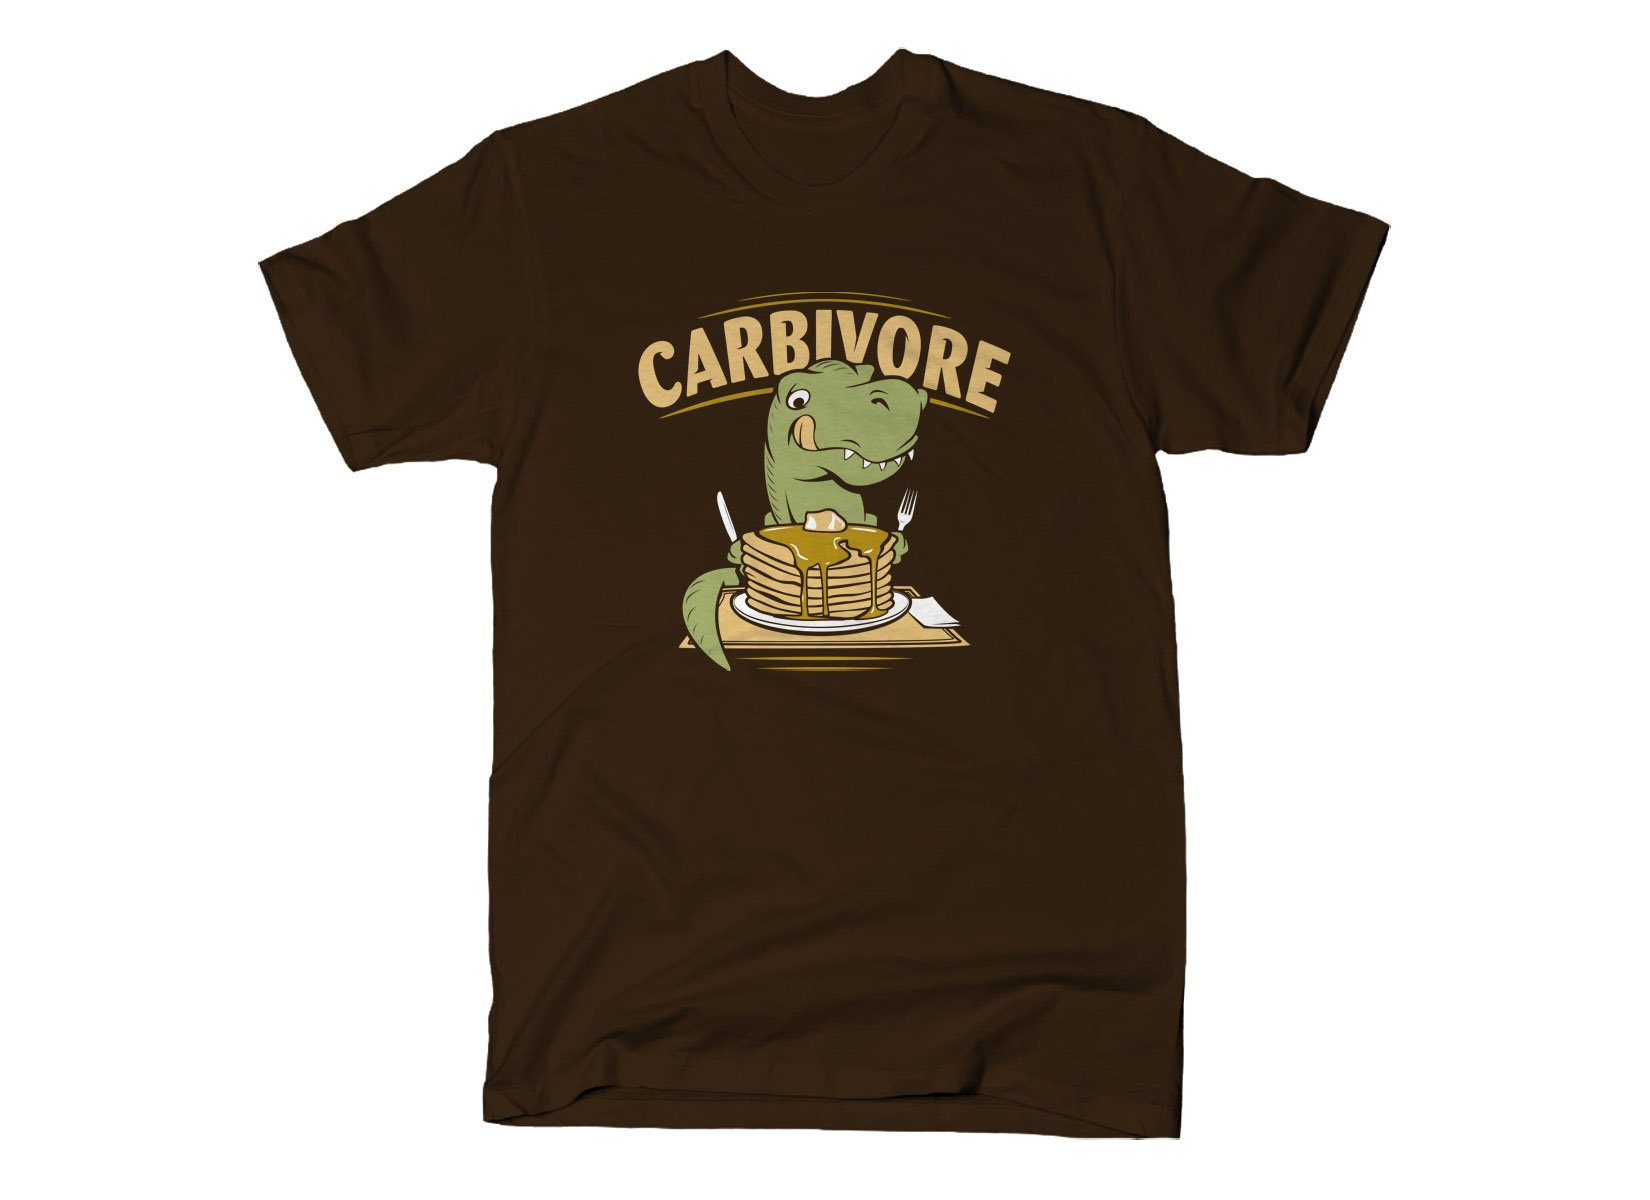 Carbivore on Mens T-Shirt